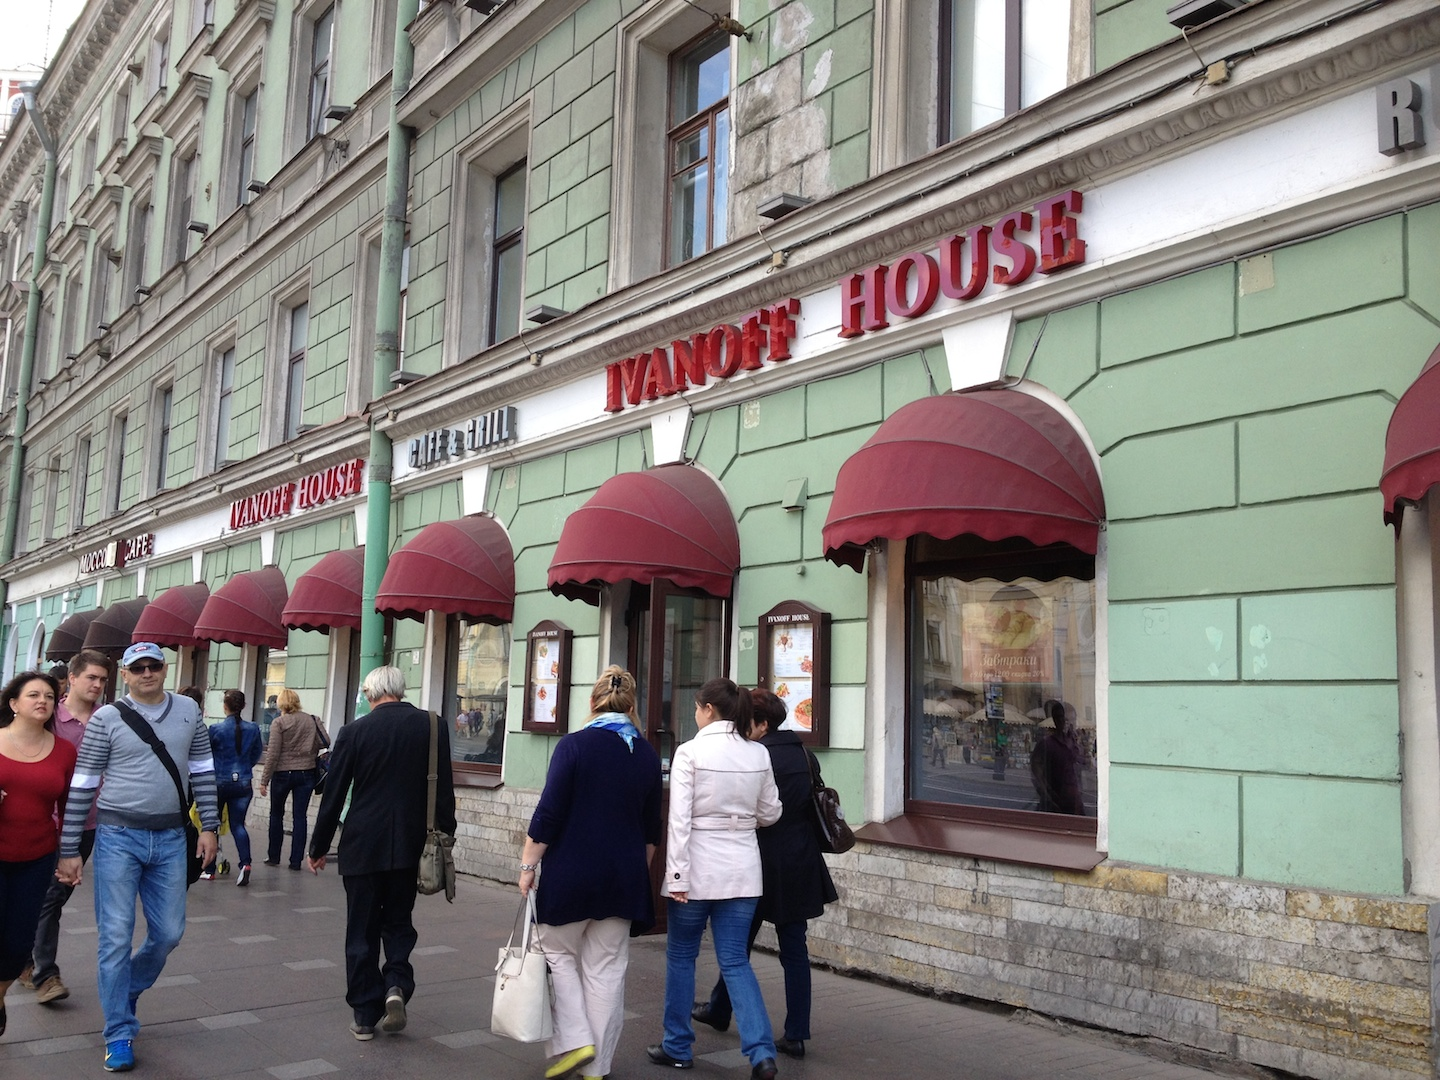 Ivanoff House St. Petersburg